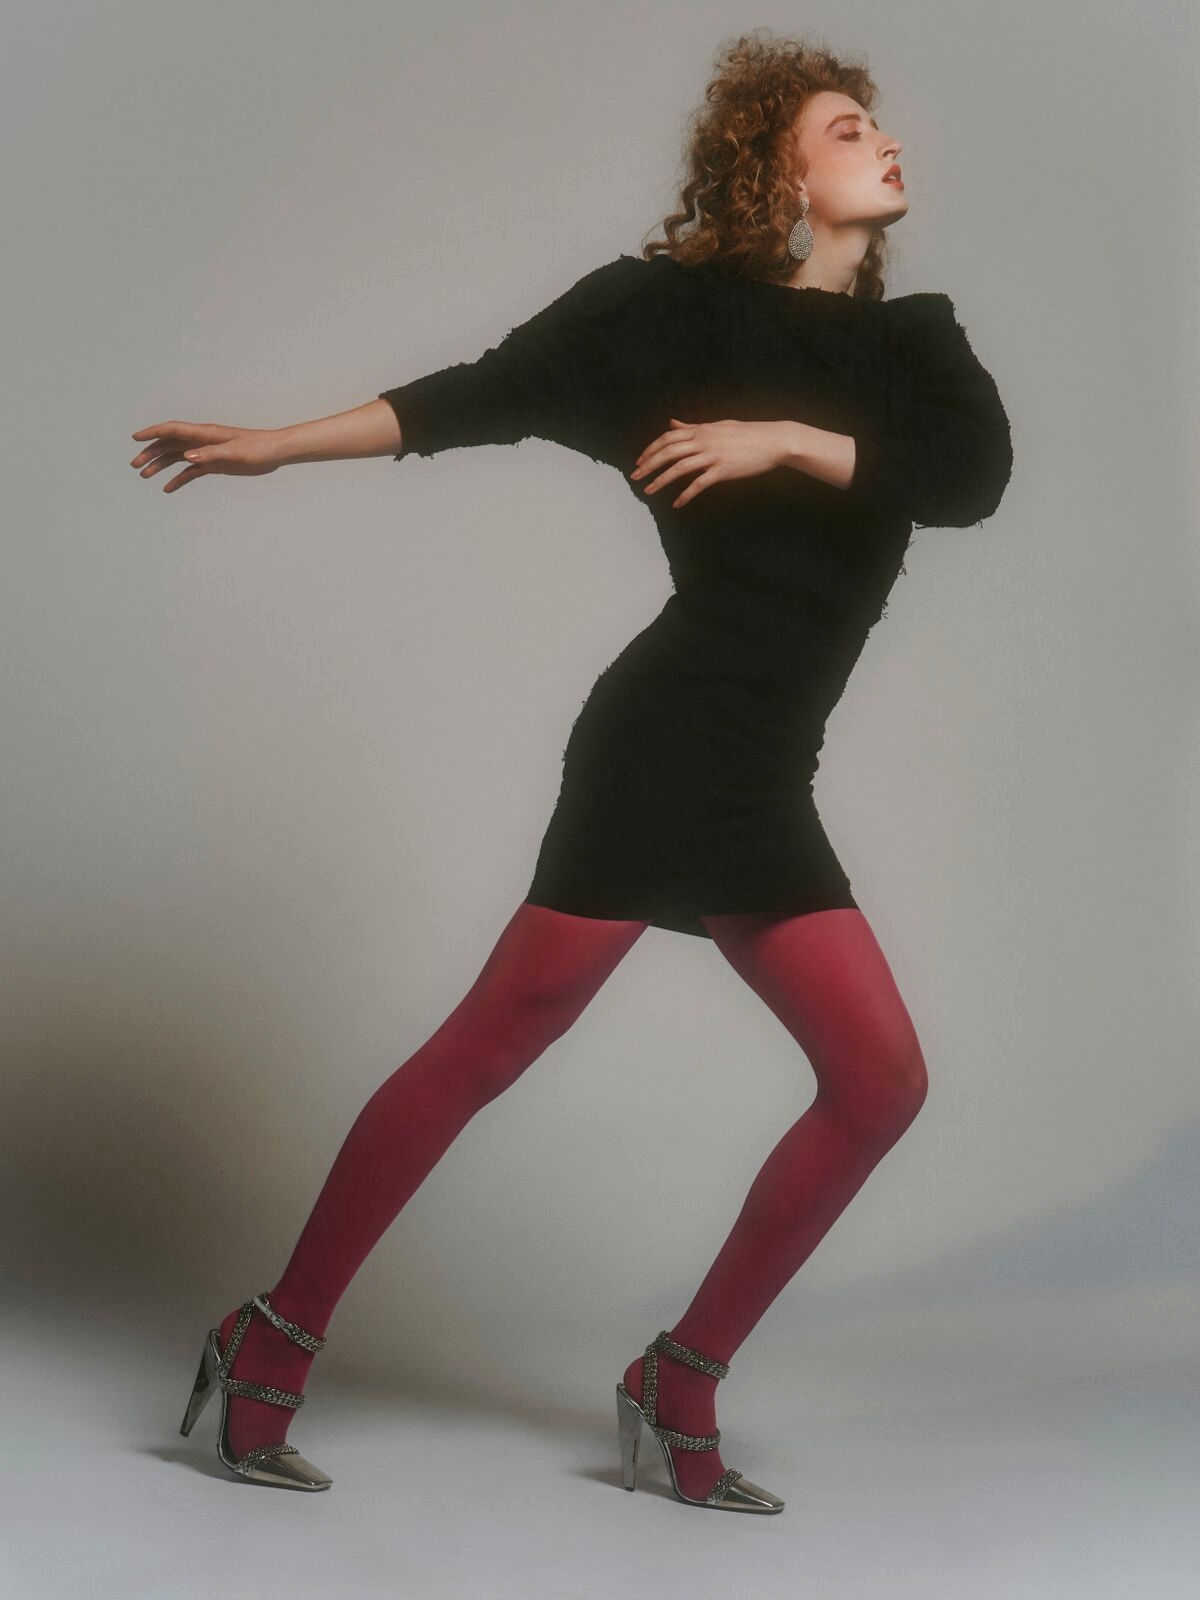 80s L'officiel copy_preview.jpeg